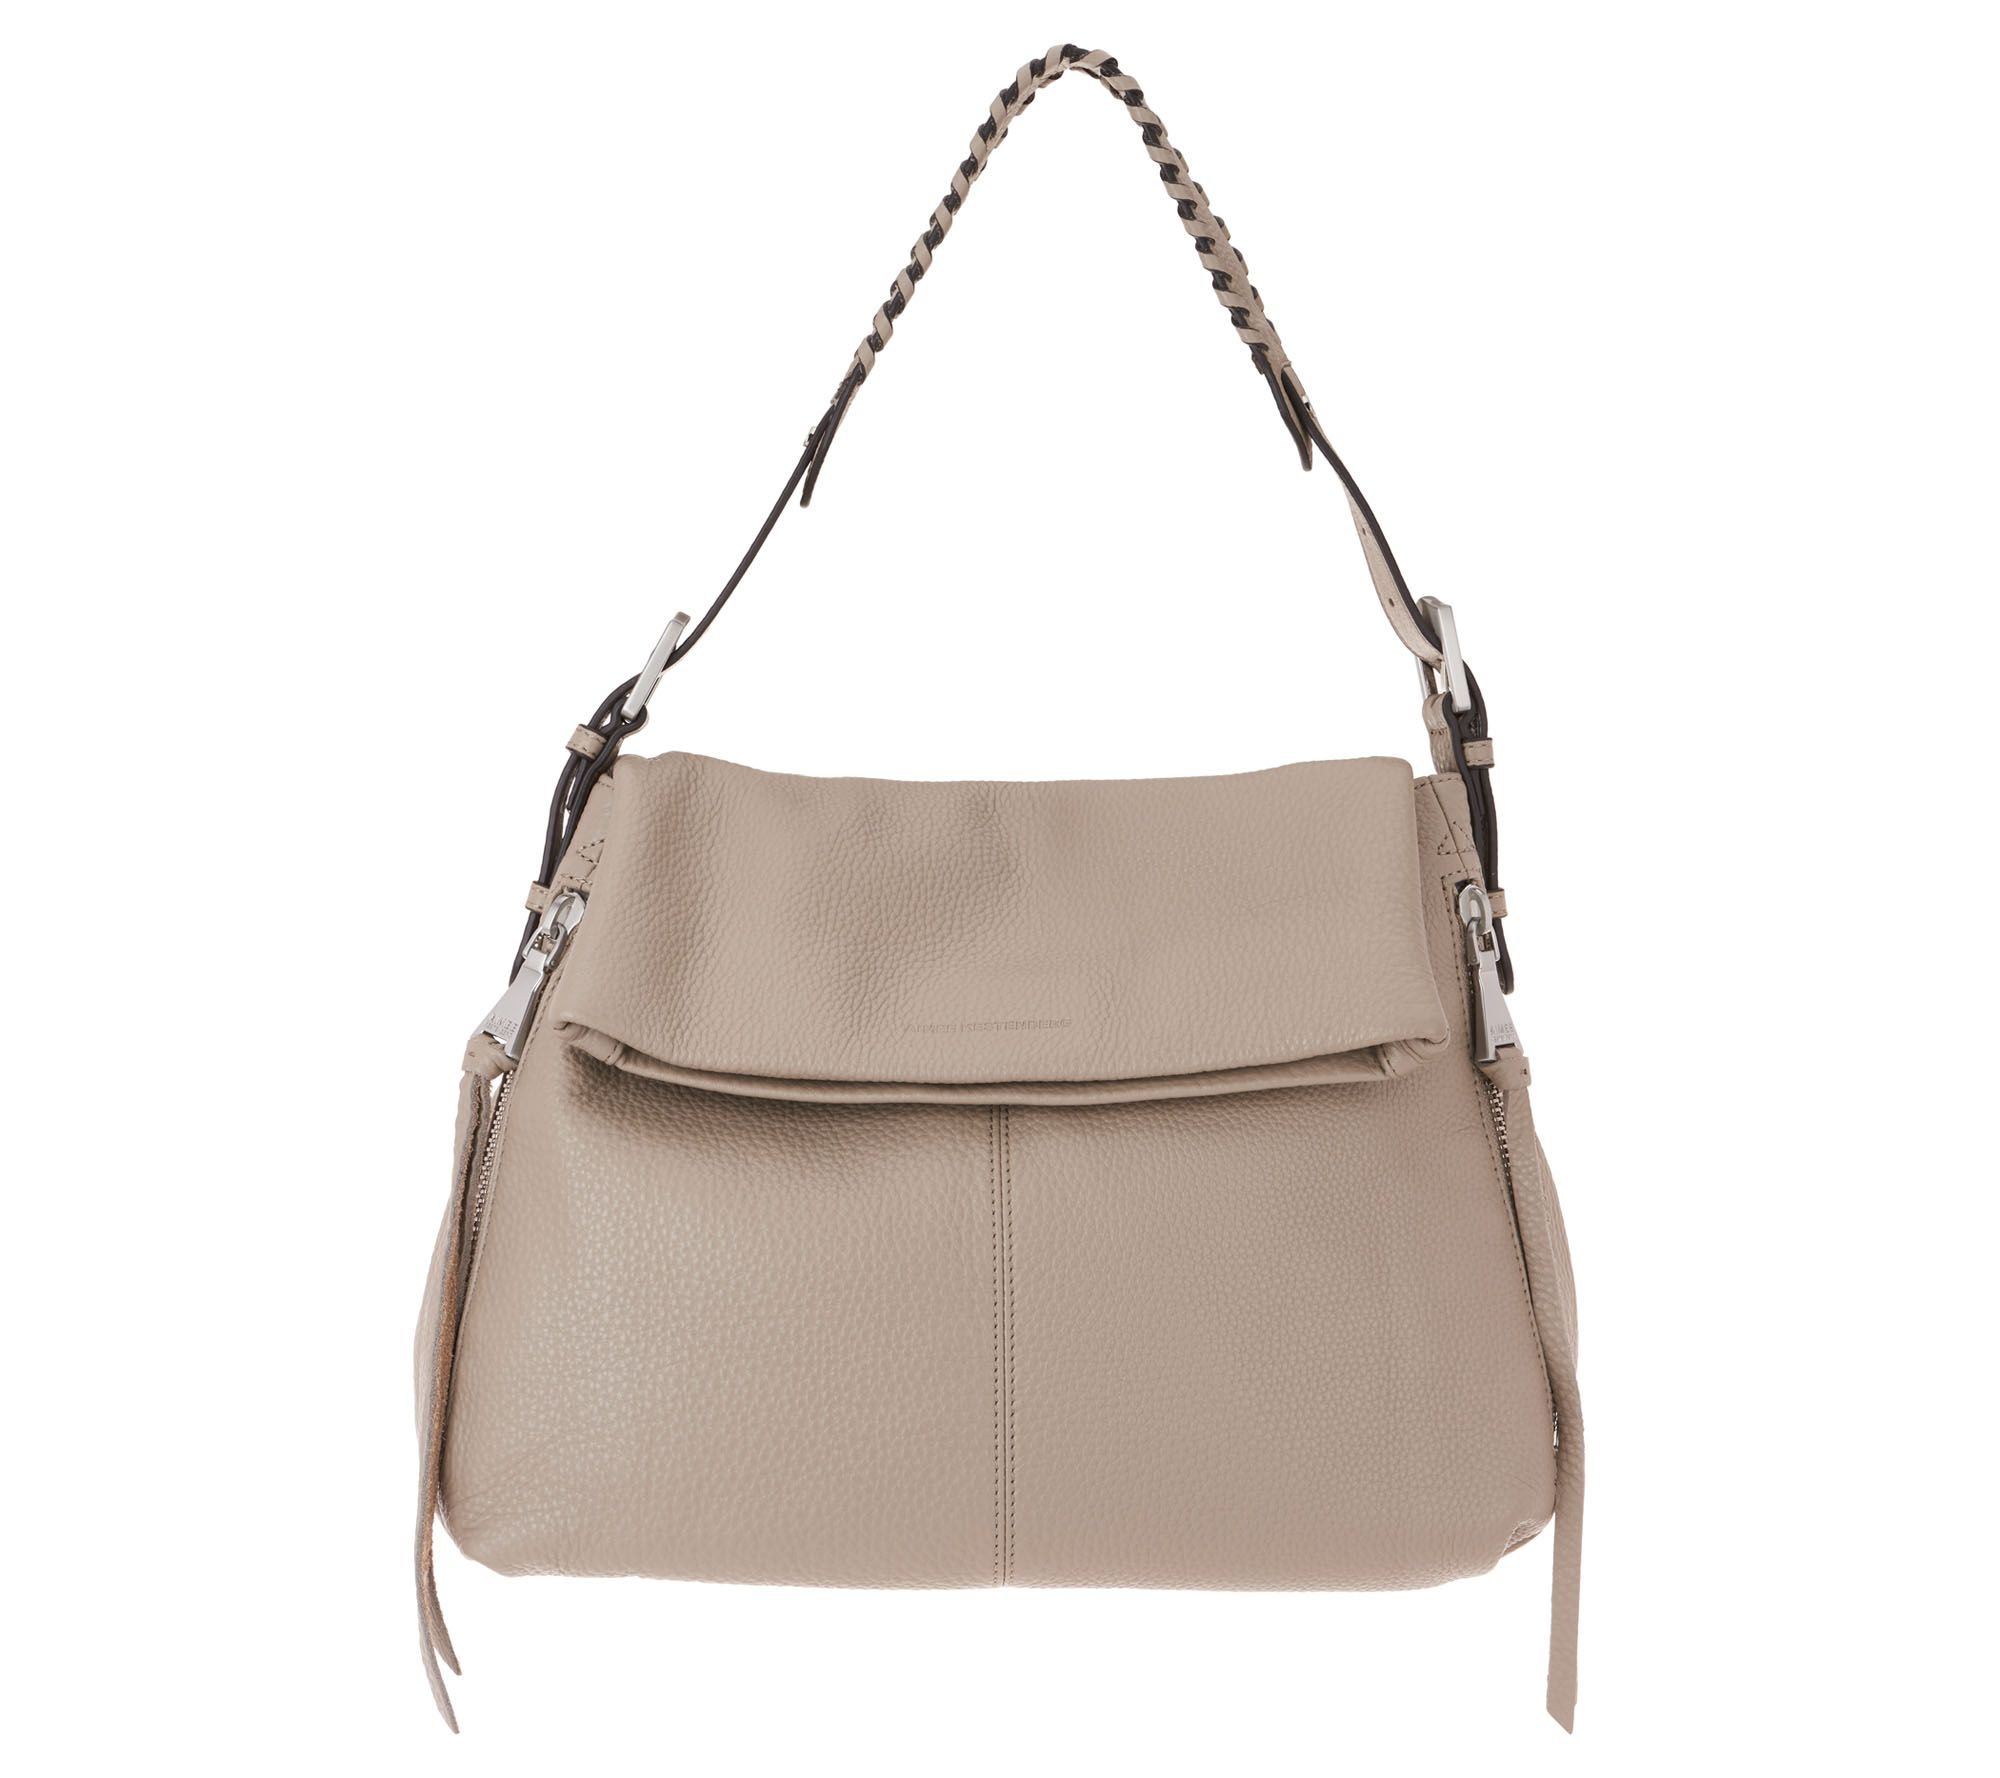 330989a5f2 Aimee Kestenberg Double Entry Leather Hobo - Penelope - Page 1 — QVC.com